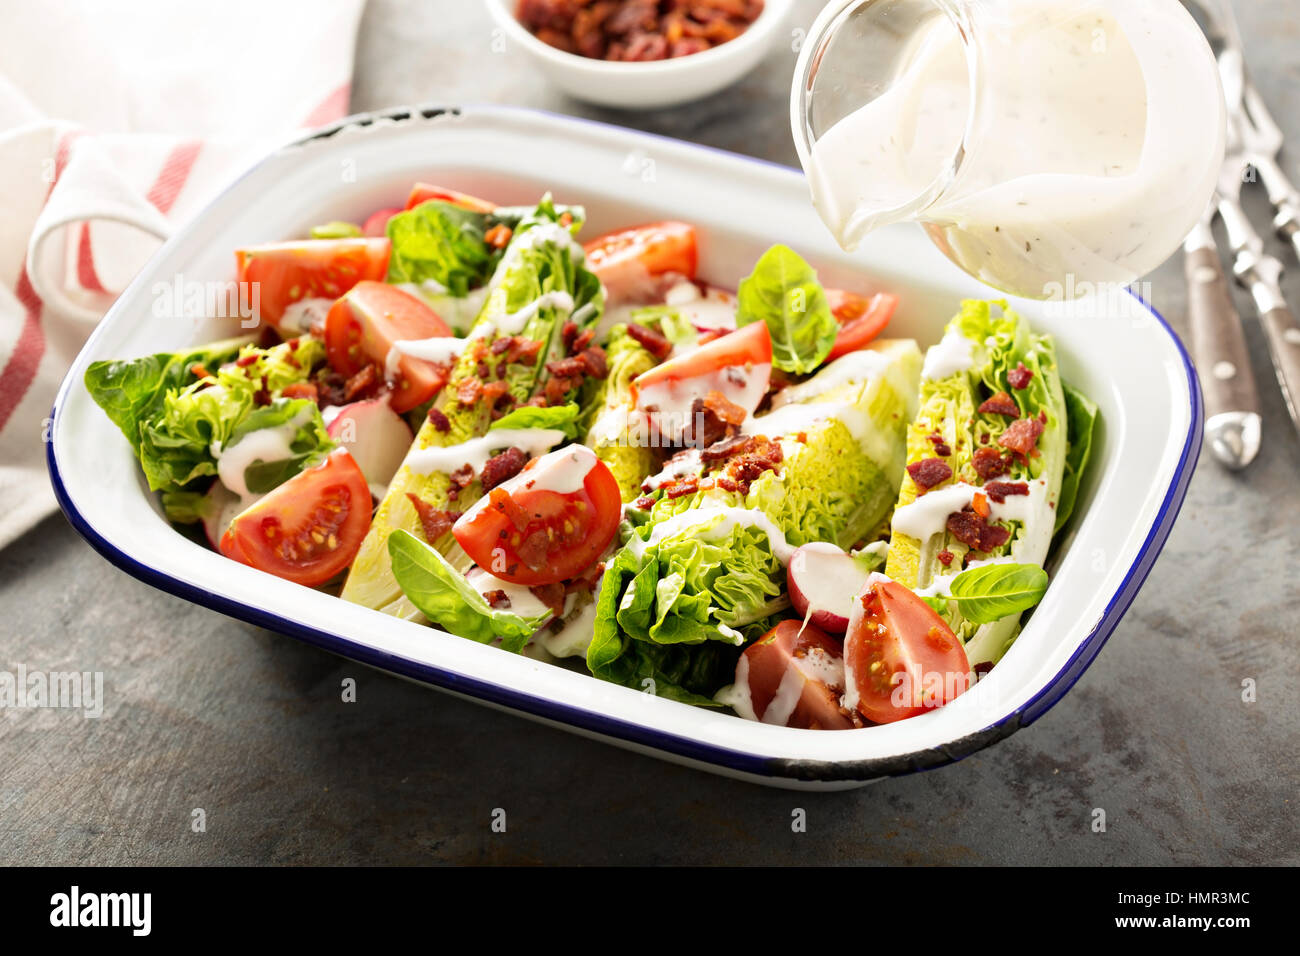 Wedge salad with baby lettuce, cherry tomatoes, bacon and ranch dressing poring over - Stock Image